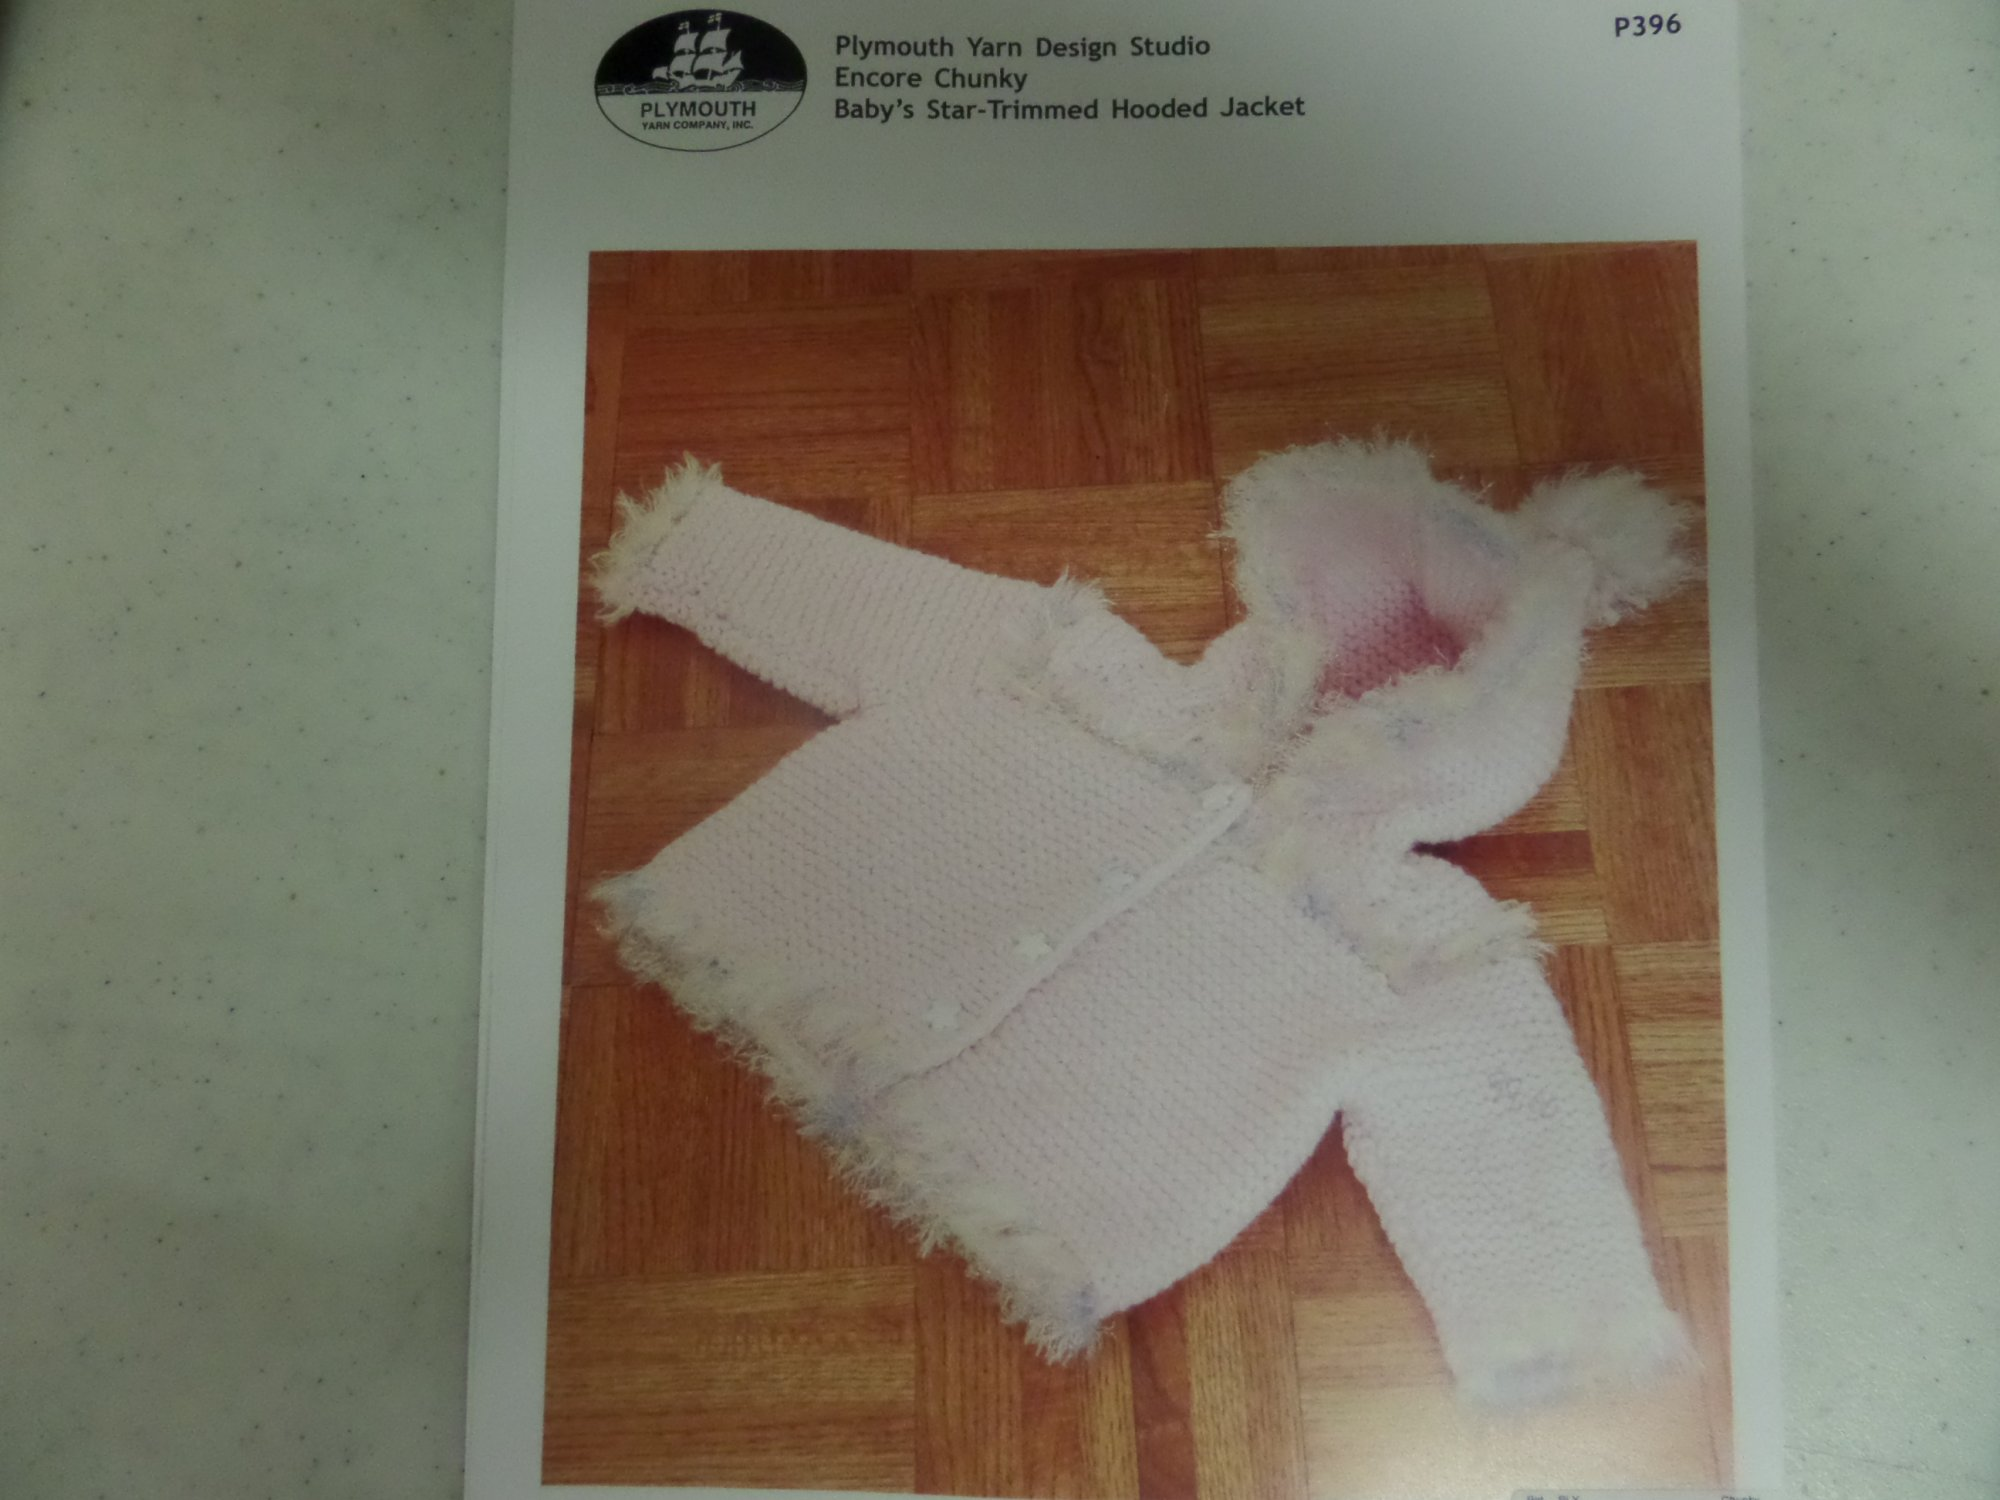 Baby's Star-Trimmed Hooded Jacket pattern P396 from Plymouth